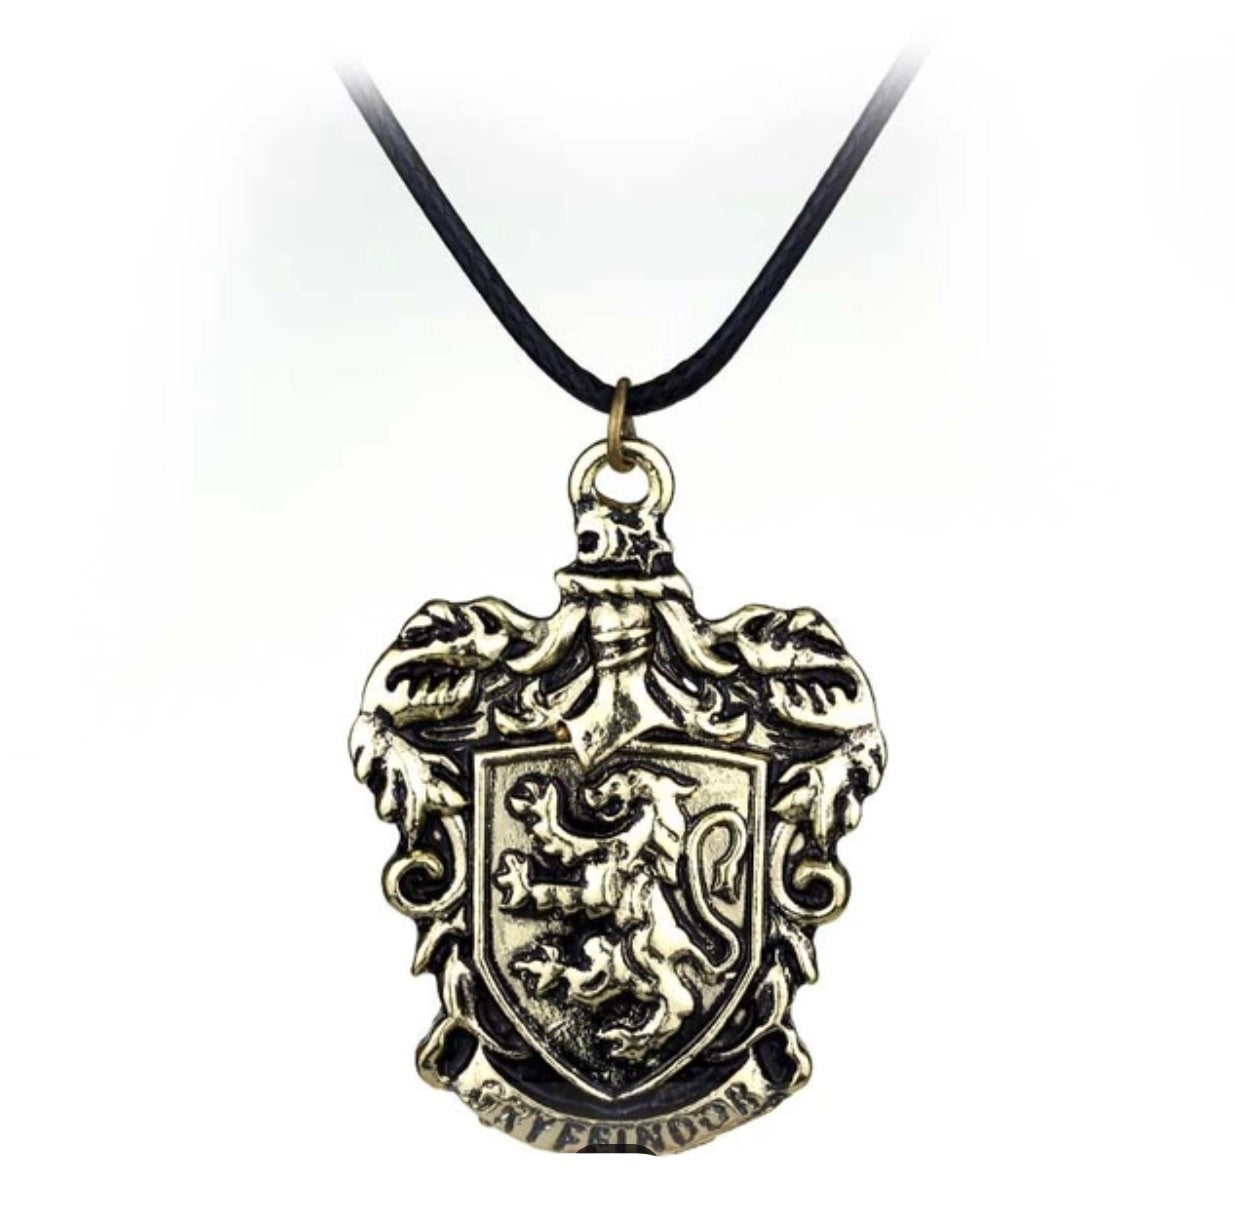 Harry Potter Gryffindor Necklace - TrippyKitty